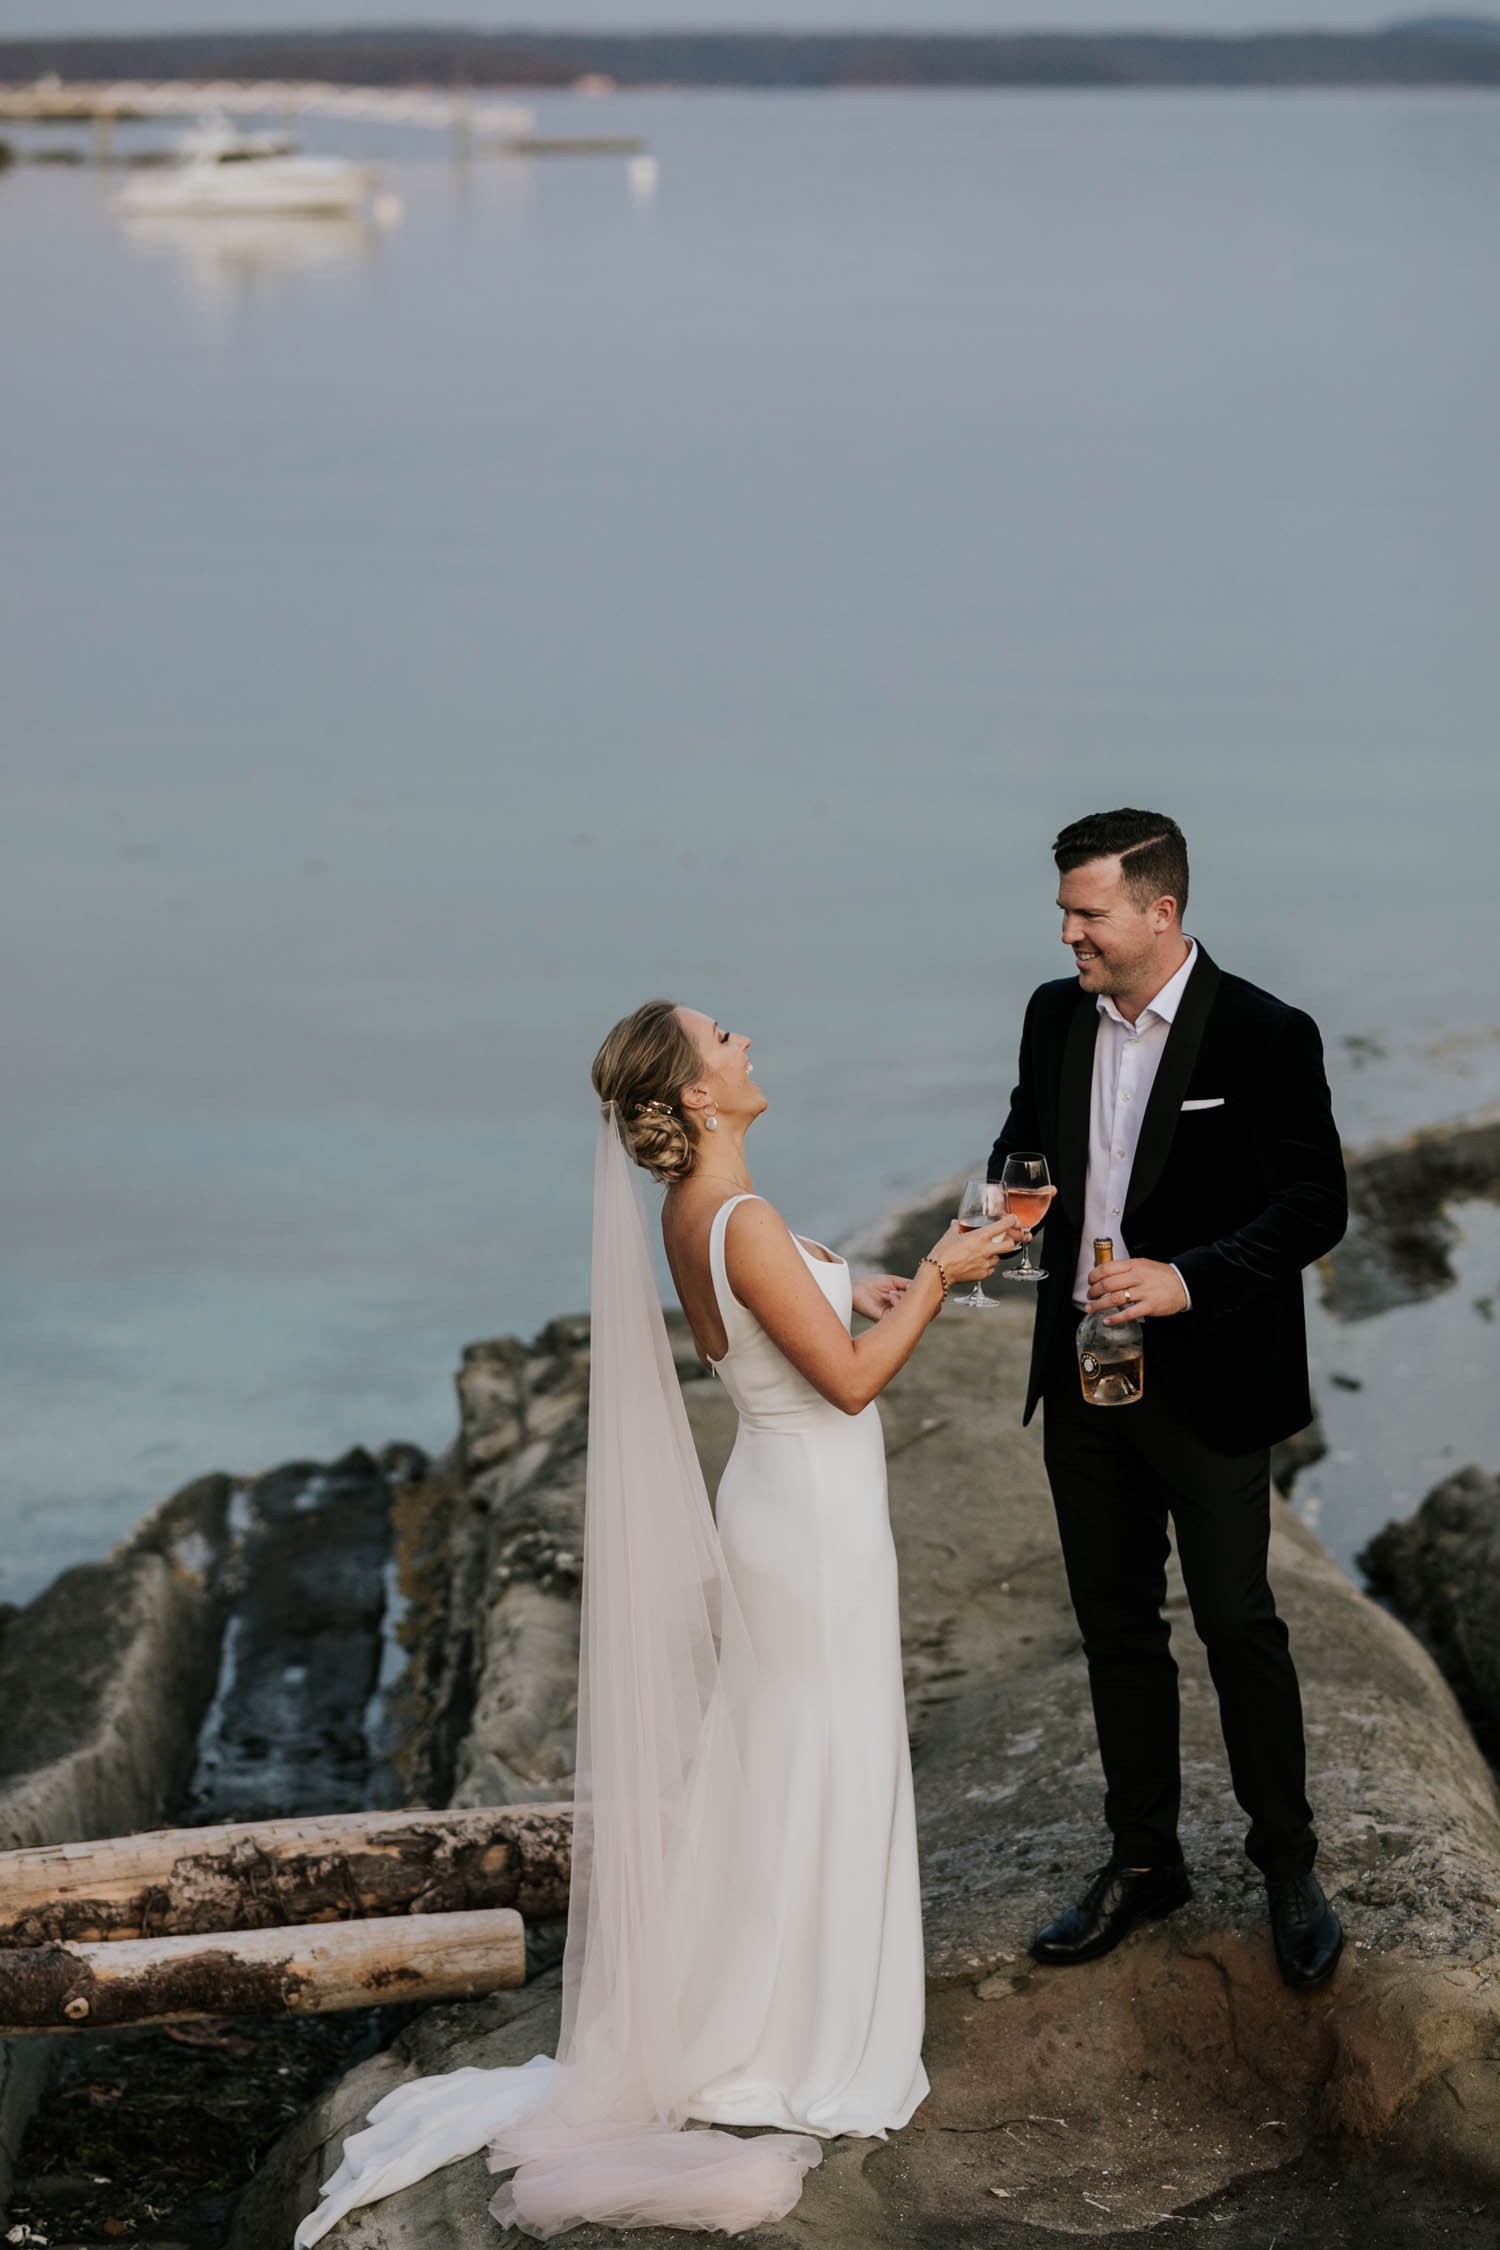 Natural and fun Vancouver Island Wedding Photographer captures intimate beach wedding on Vancouver Island at beautiful venue and location with sea and mountain views